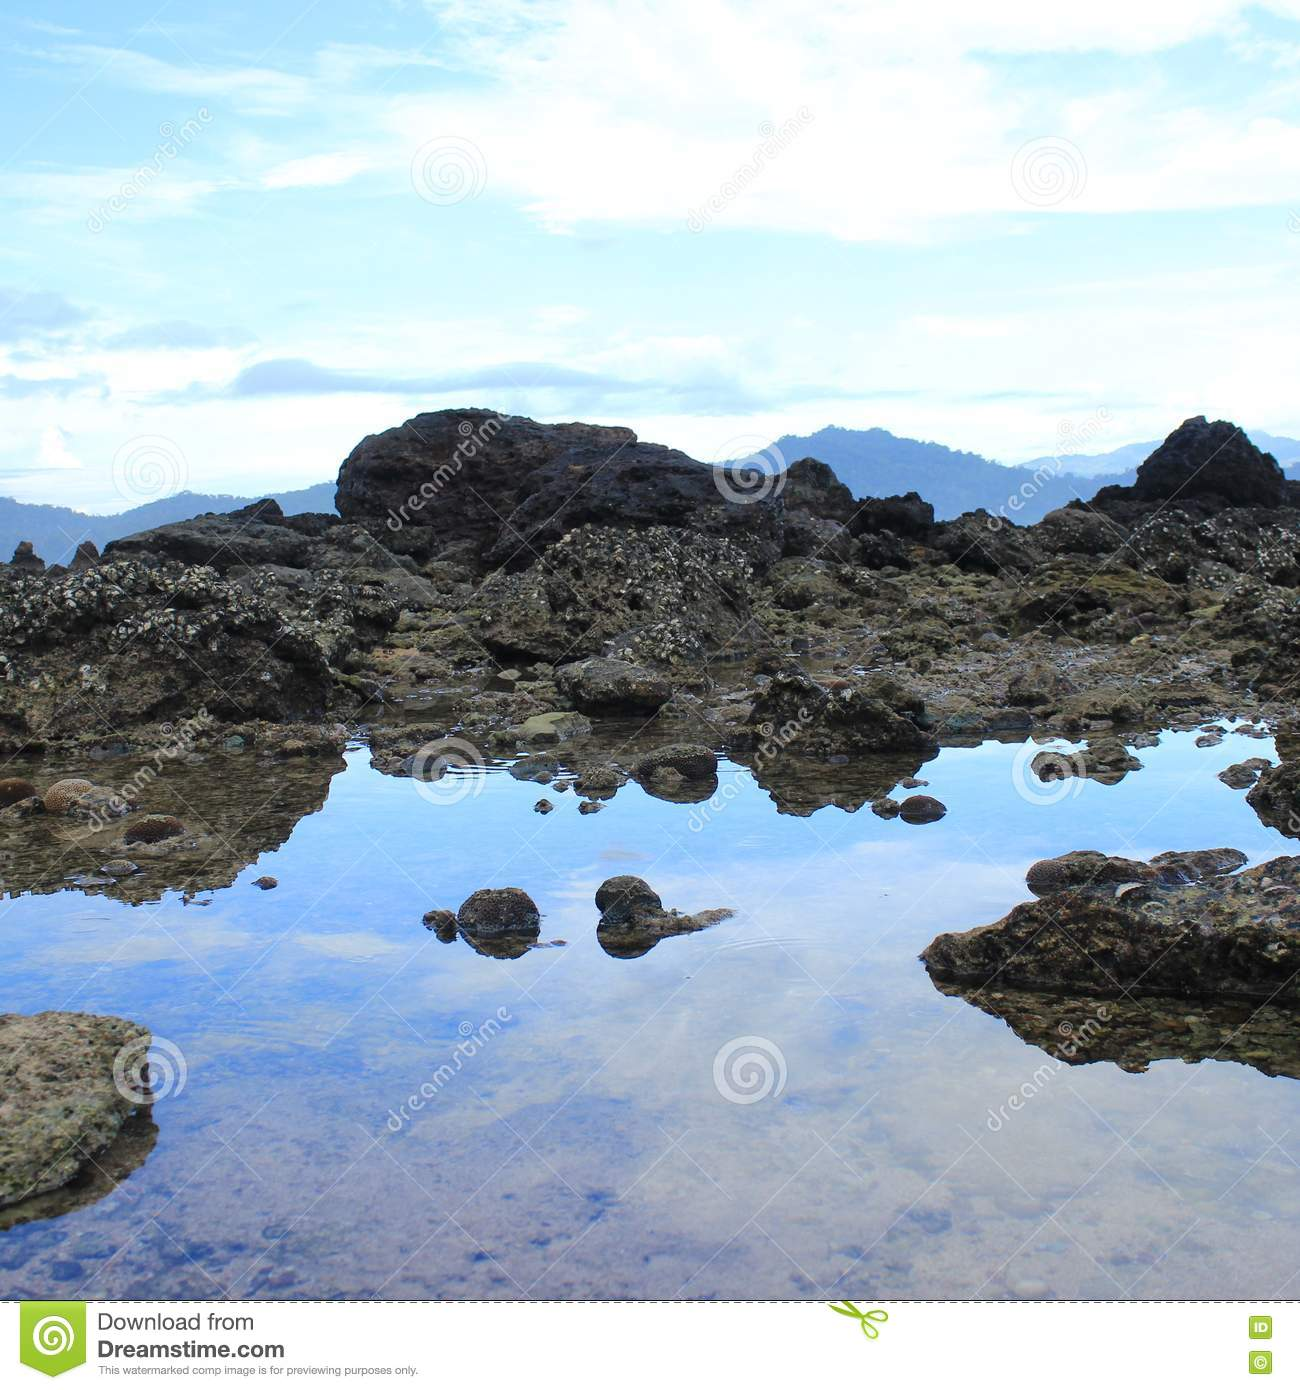 Coral Reef Stock Image. Image Of Coral, Rock, Beach, Reef